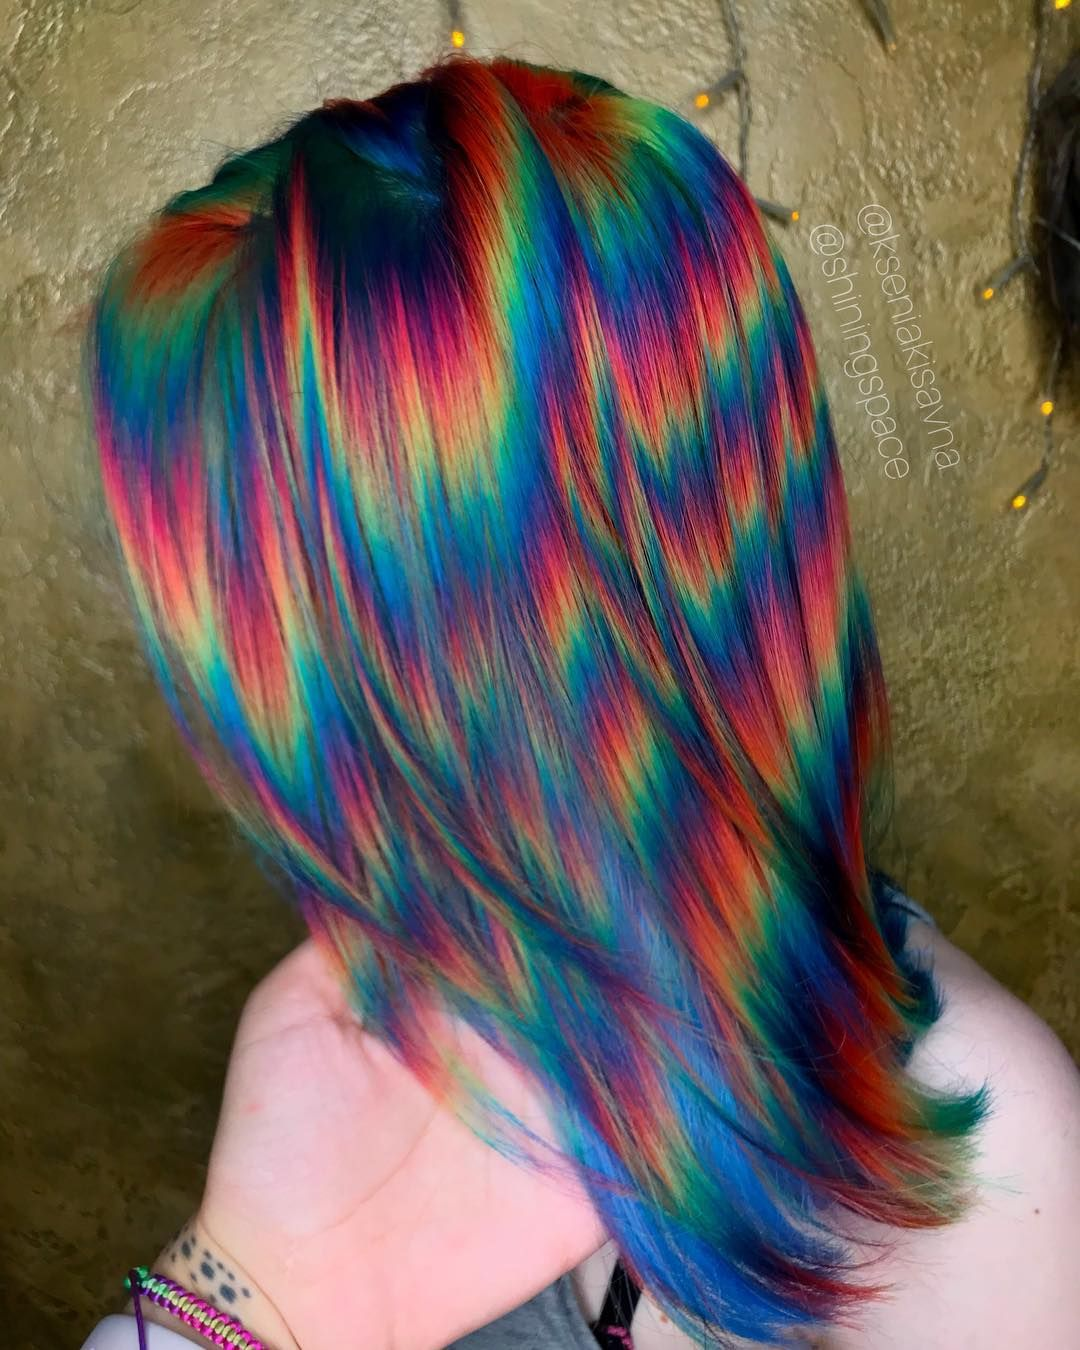 25 Times When People Had Tacky Ideas But Ended Unexpectedly Well Swish Today Holographic Hair Hair Styles Rainbow Hair Color